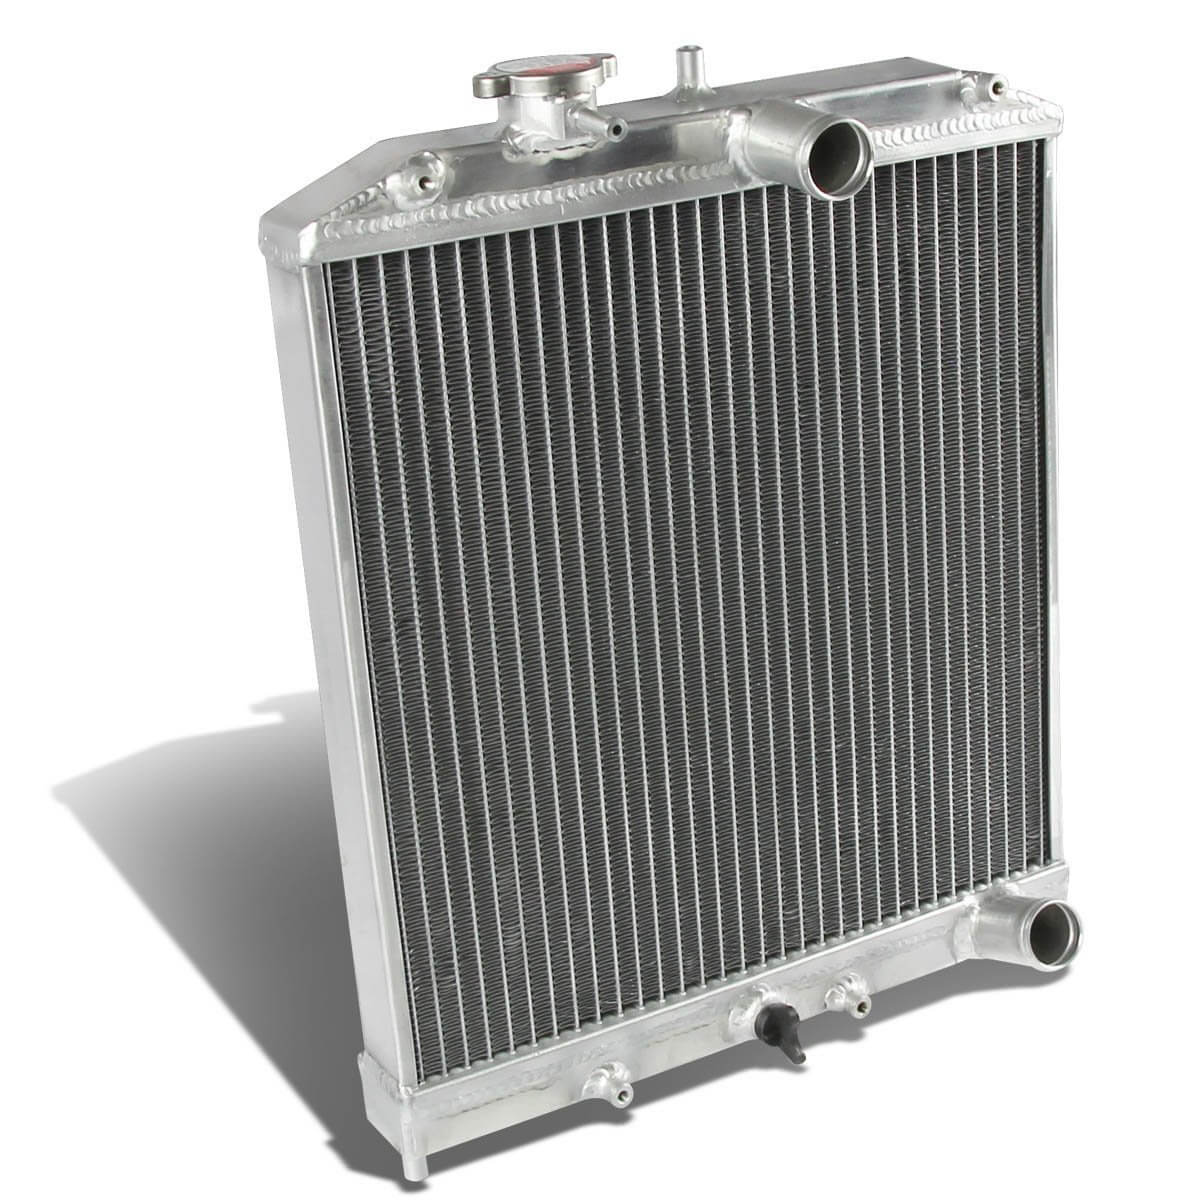 Mobile Radiator Repairs - We Come To You